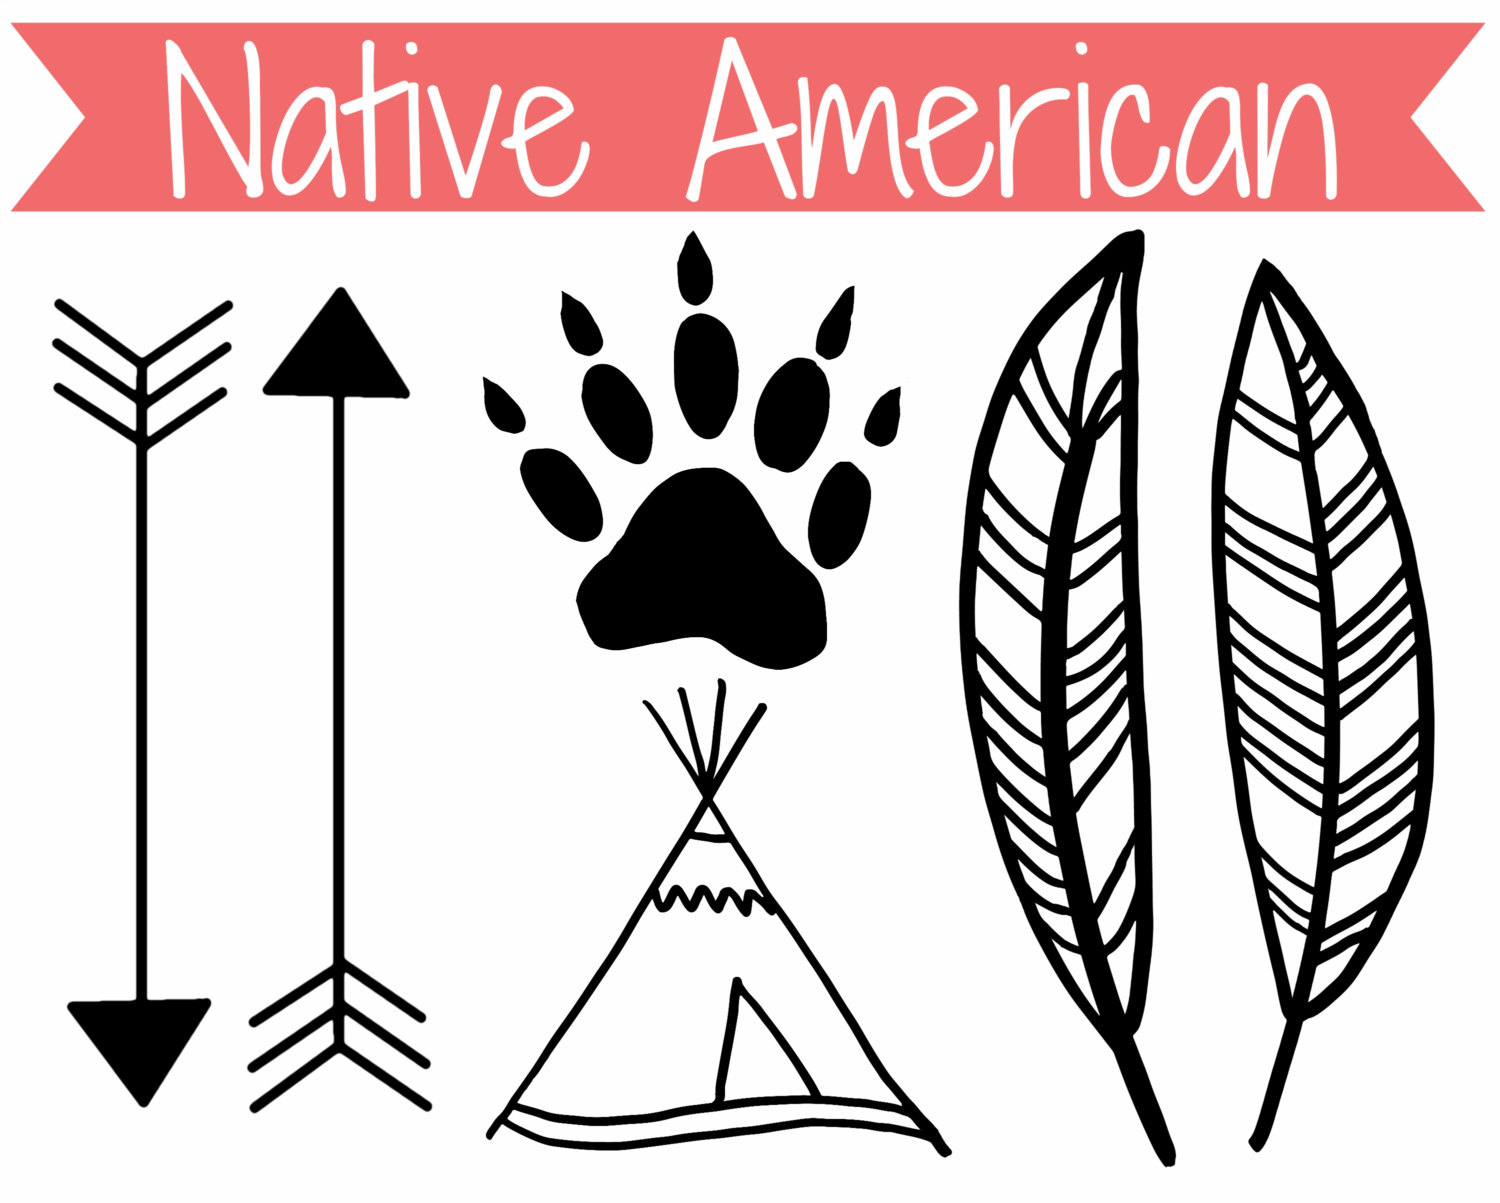 American indian clipart designs png free library American indian designs clip art - Clip Art Library png free library